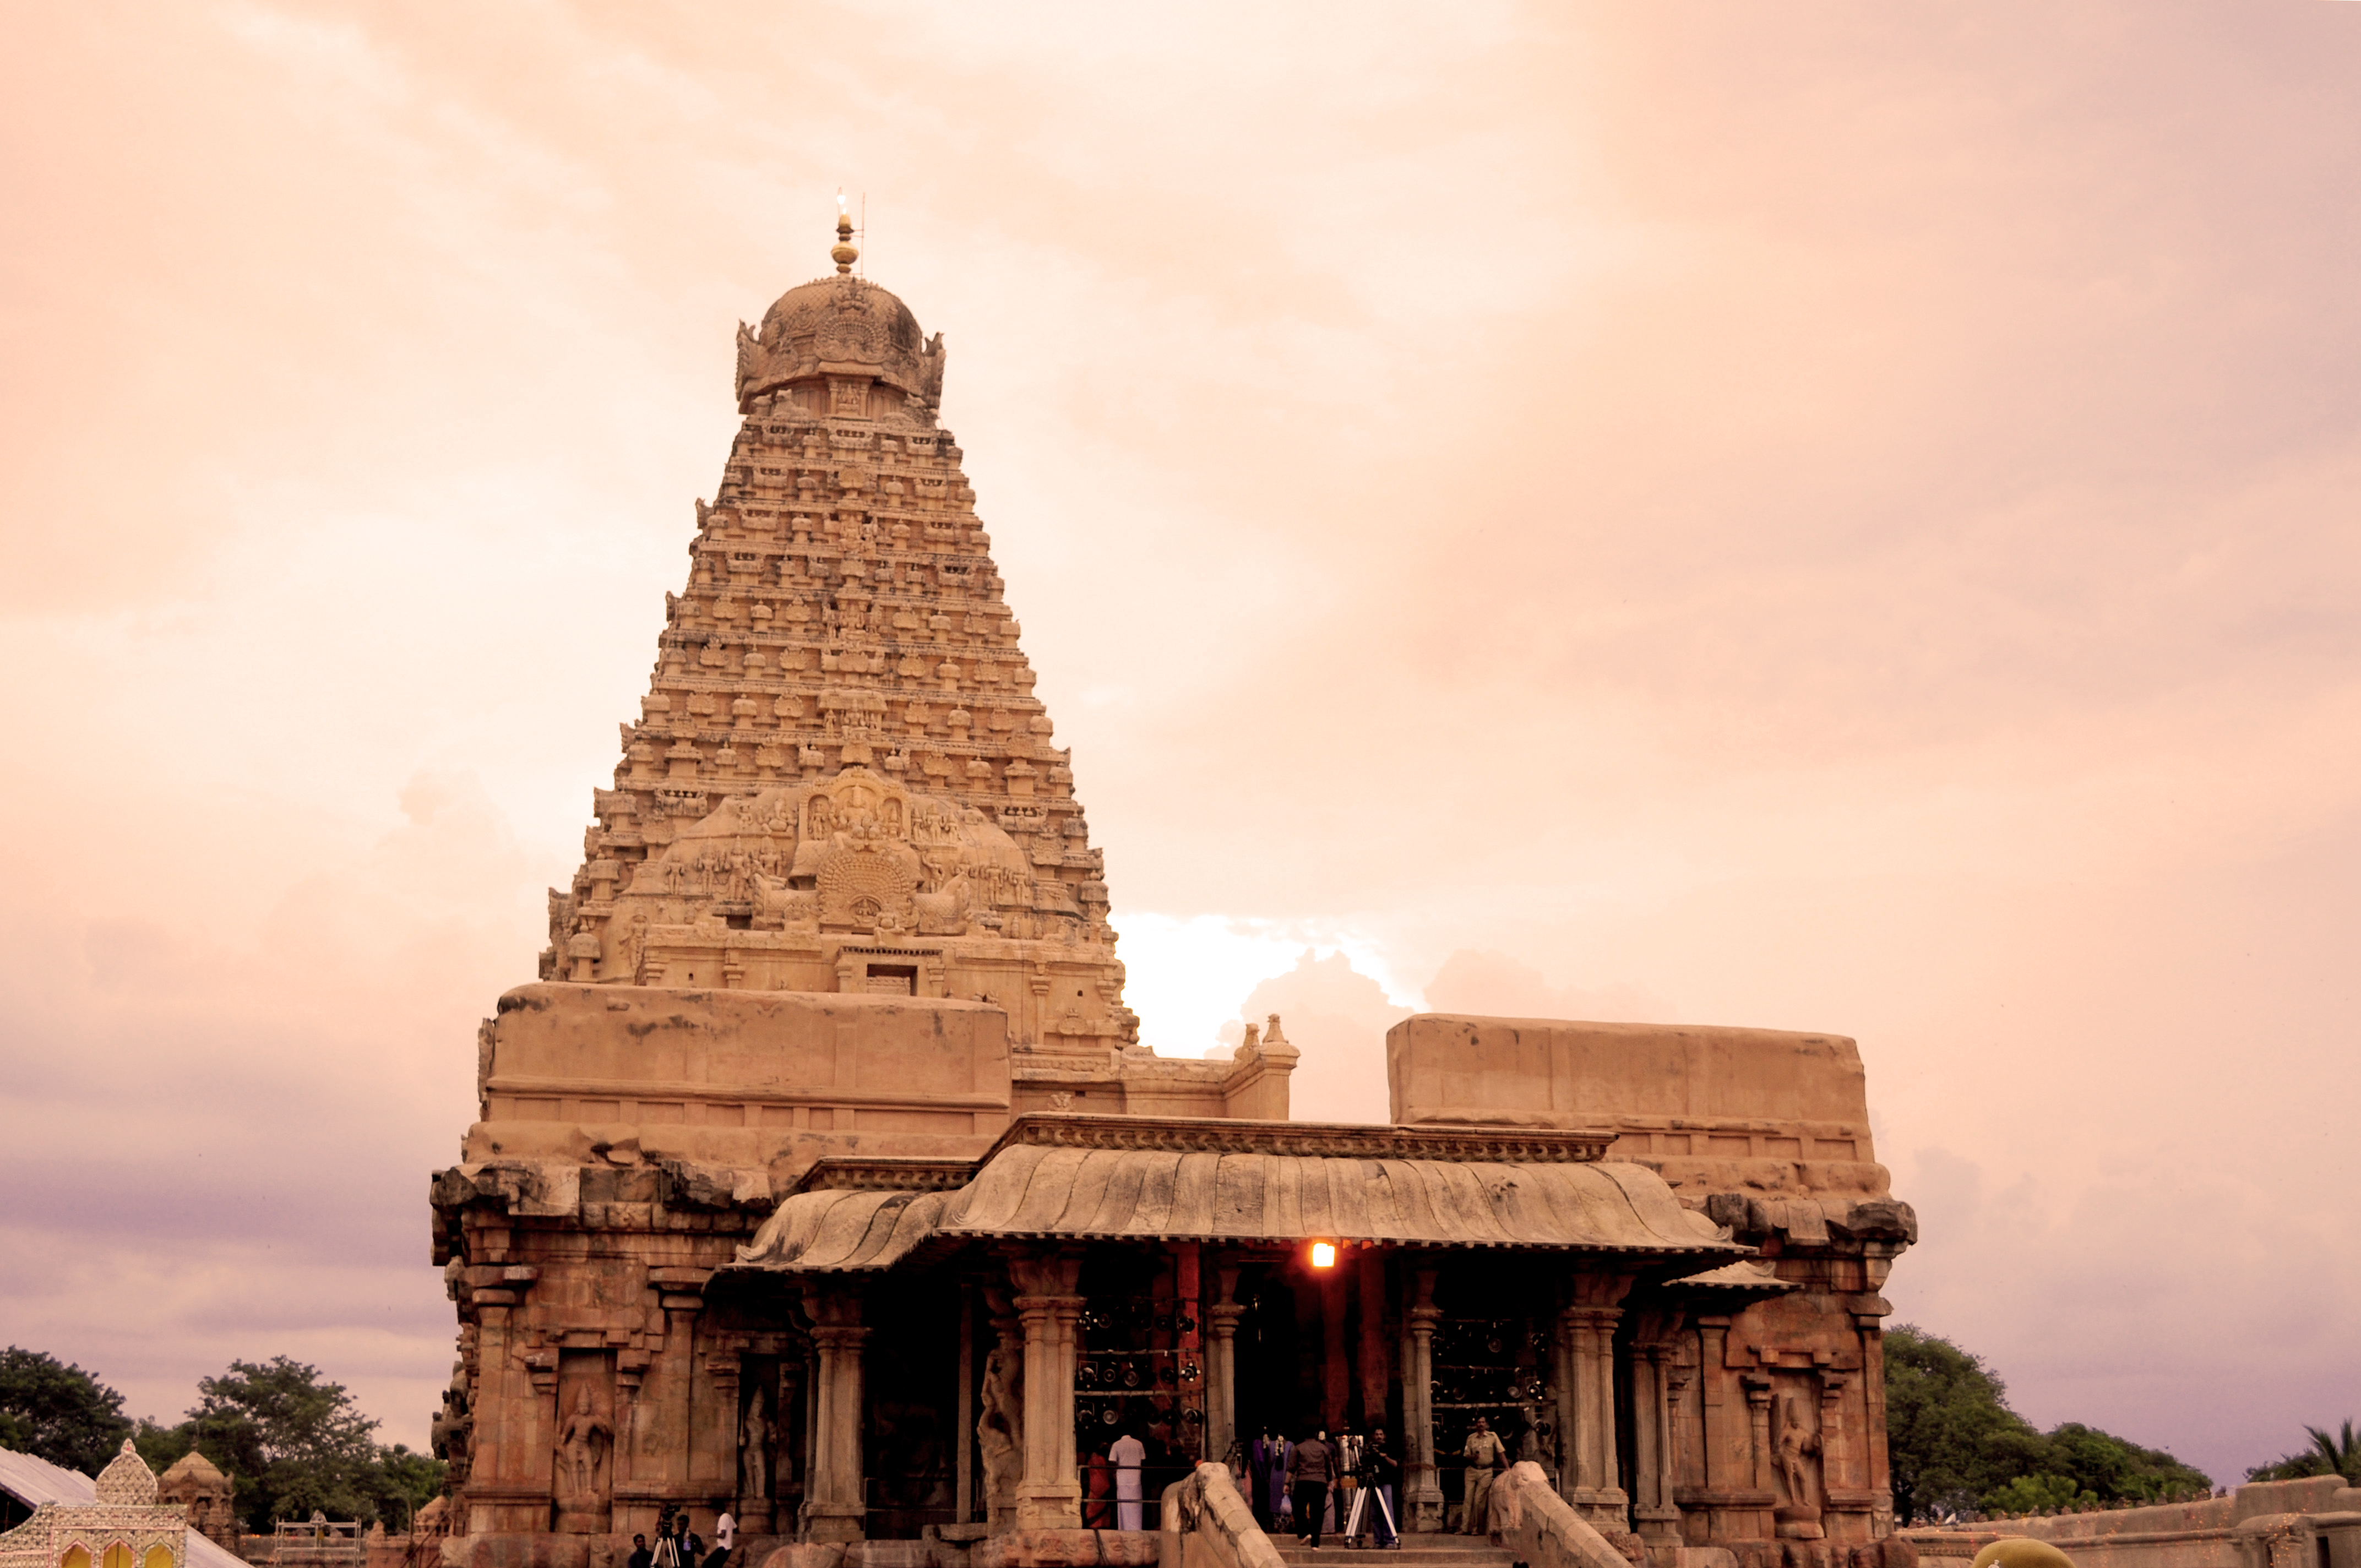 The_Big_Temple_-_Tanjore